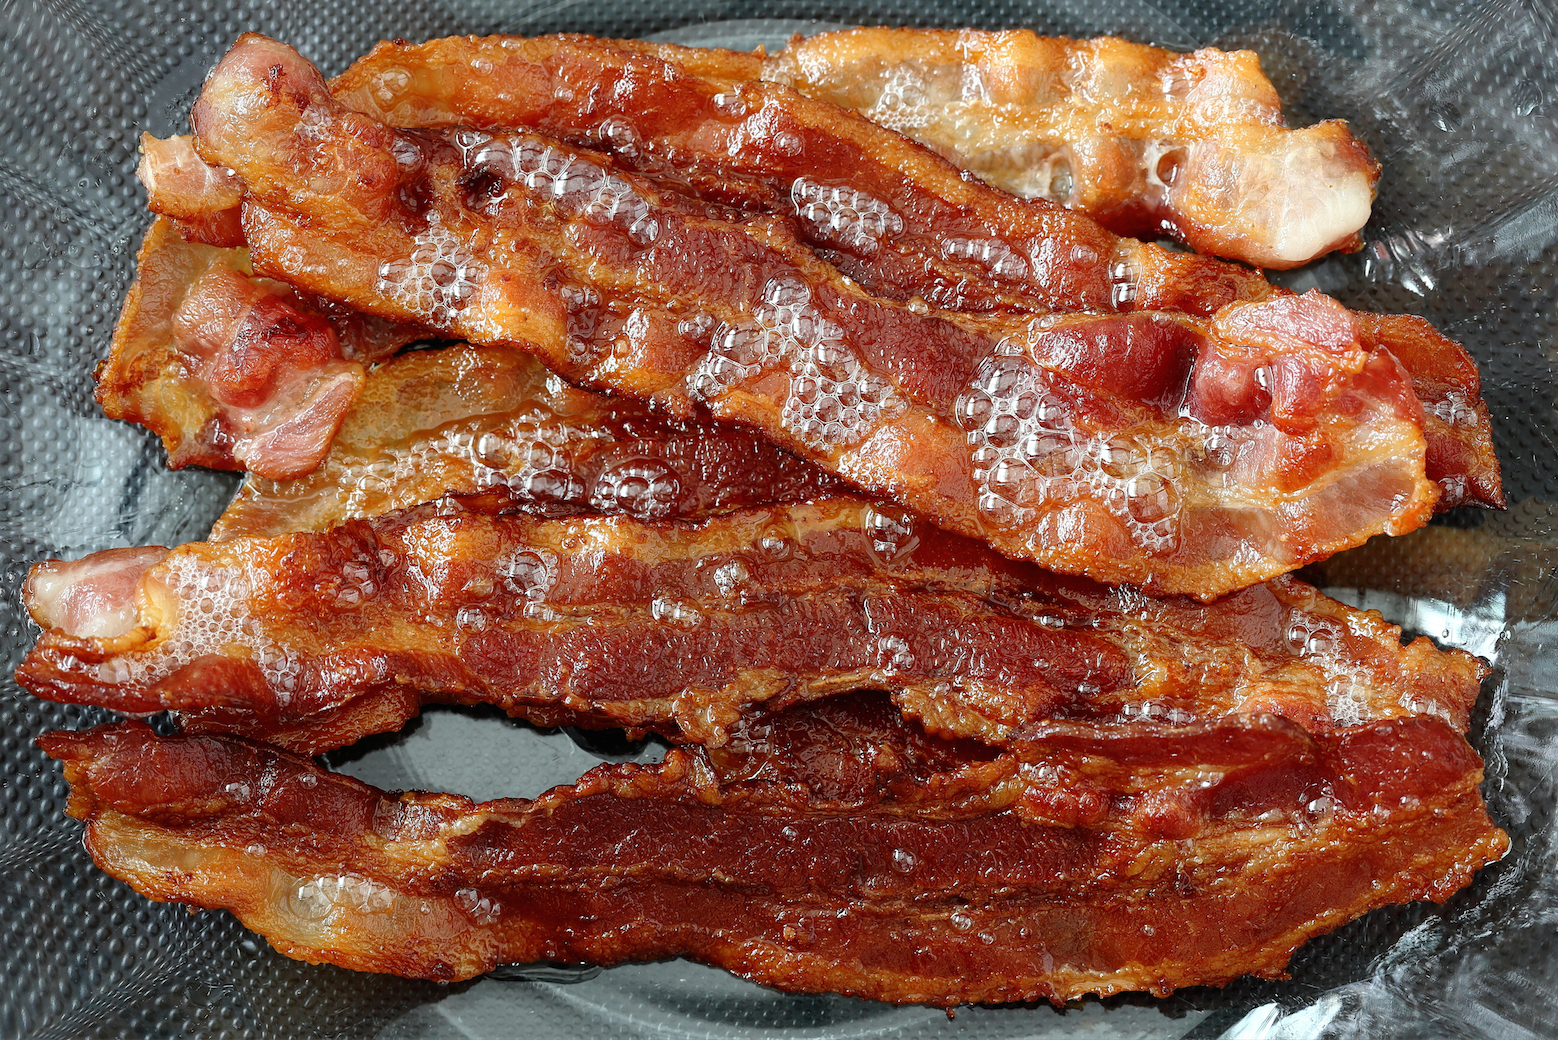 Cooked bacon is seen in this file photo. (Credit: Shutterstock)